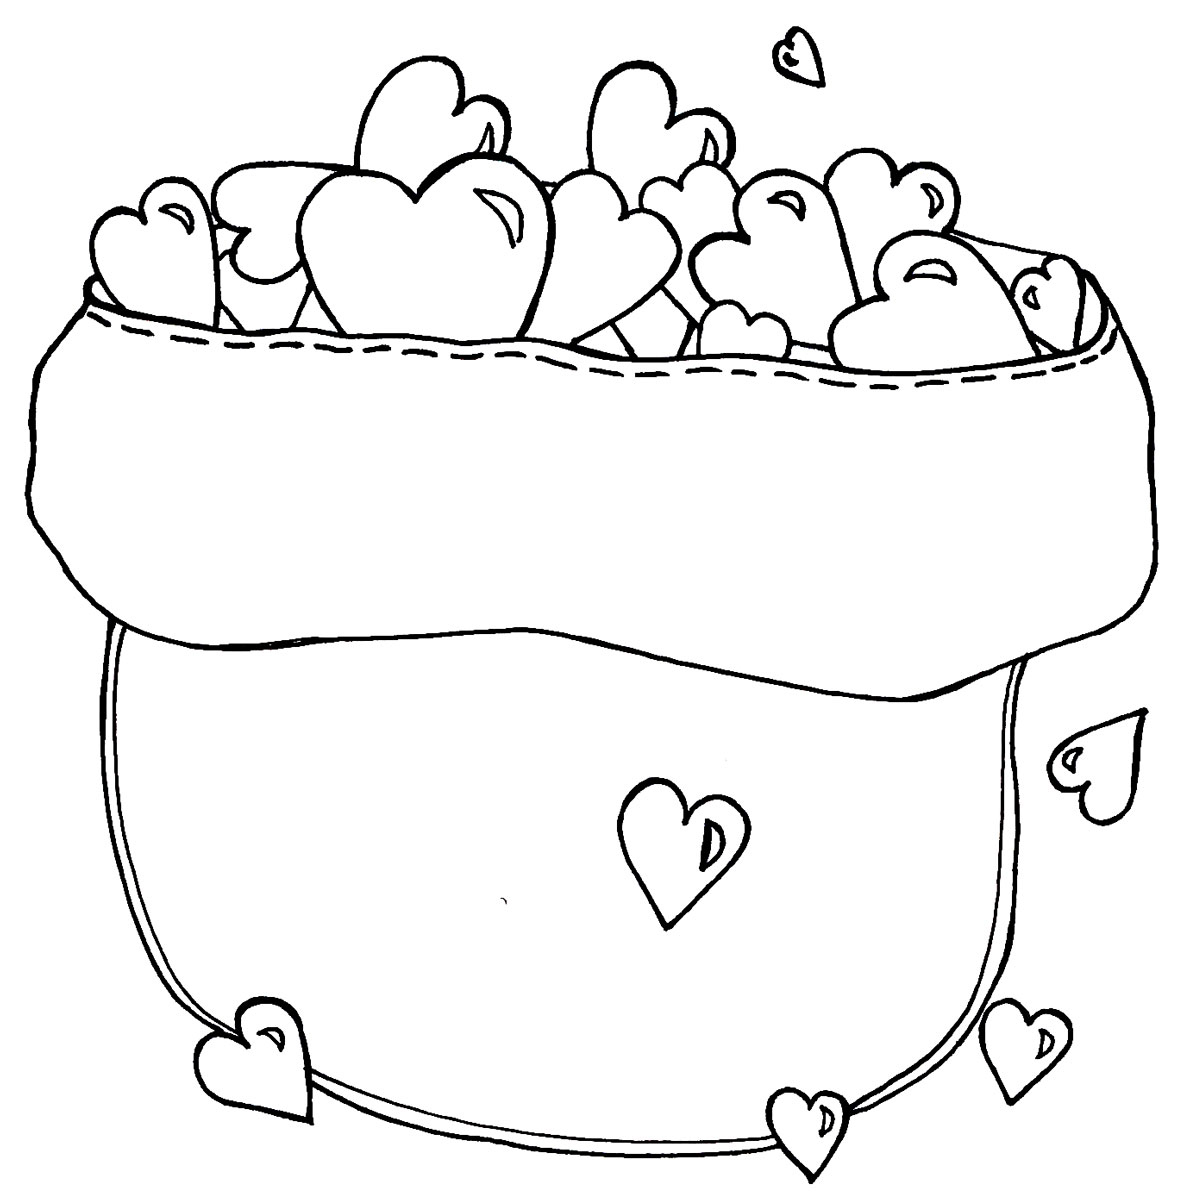 snow day coloring pages - free coloring pages of snowy day